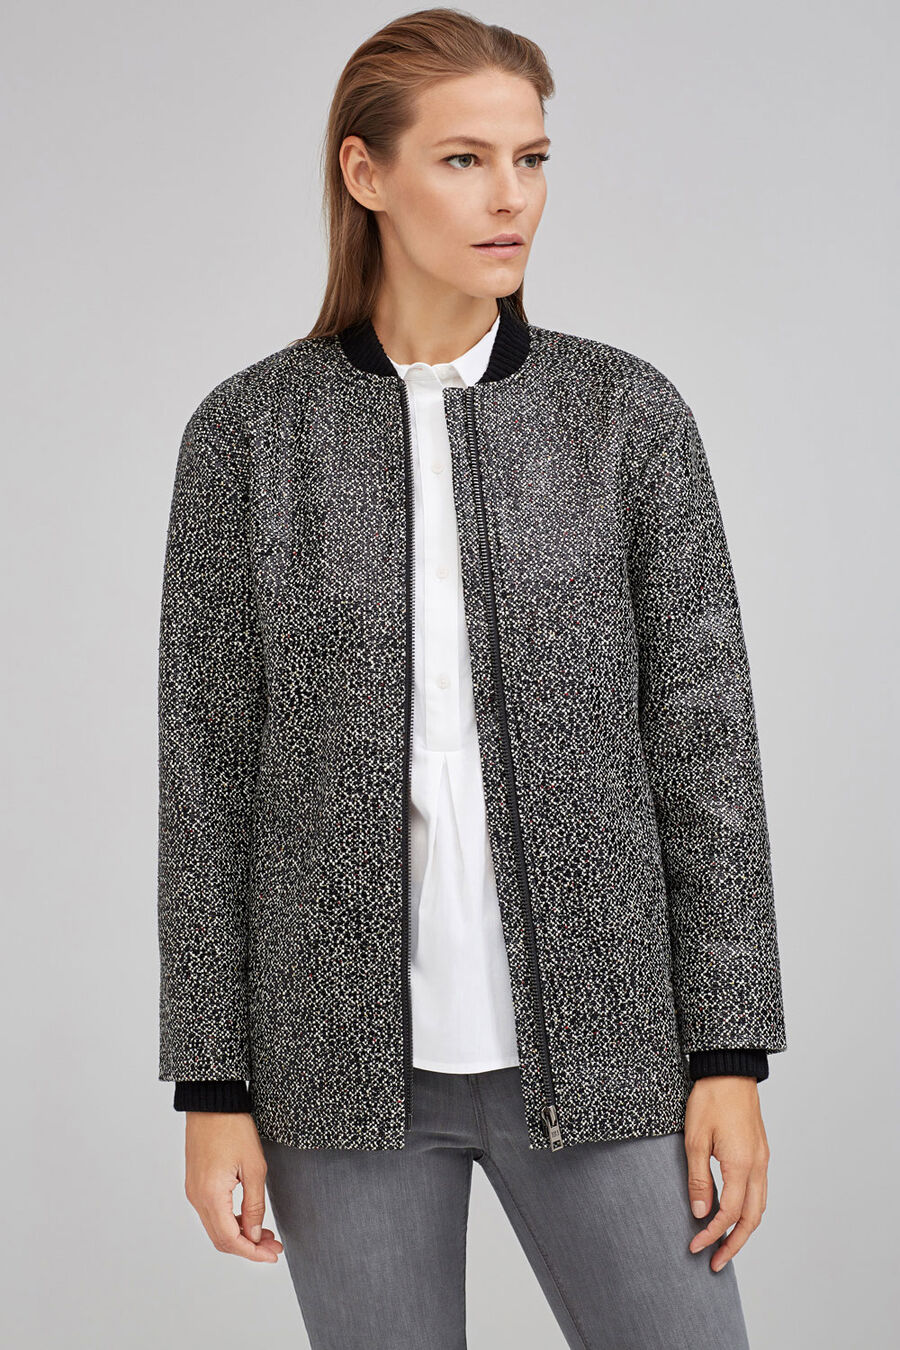 Fancy bomber jacket